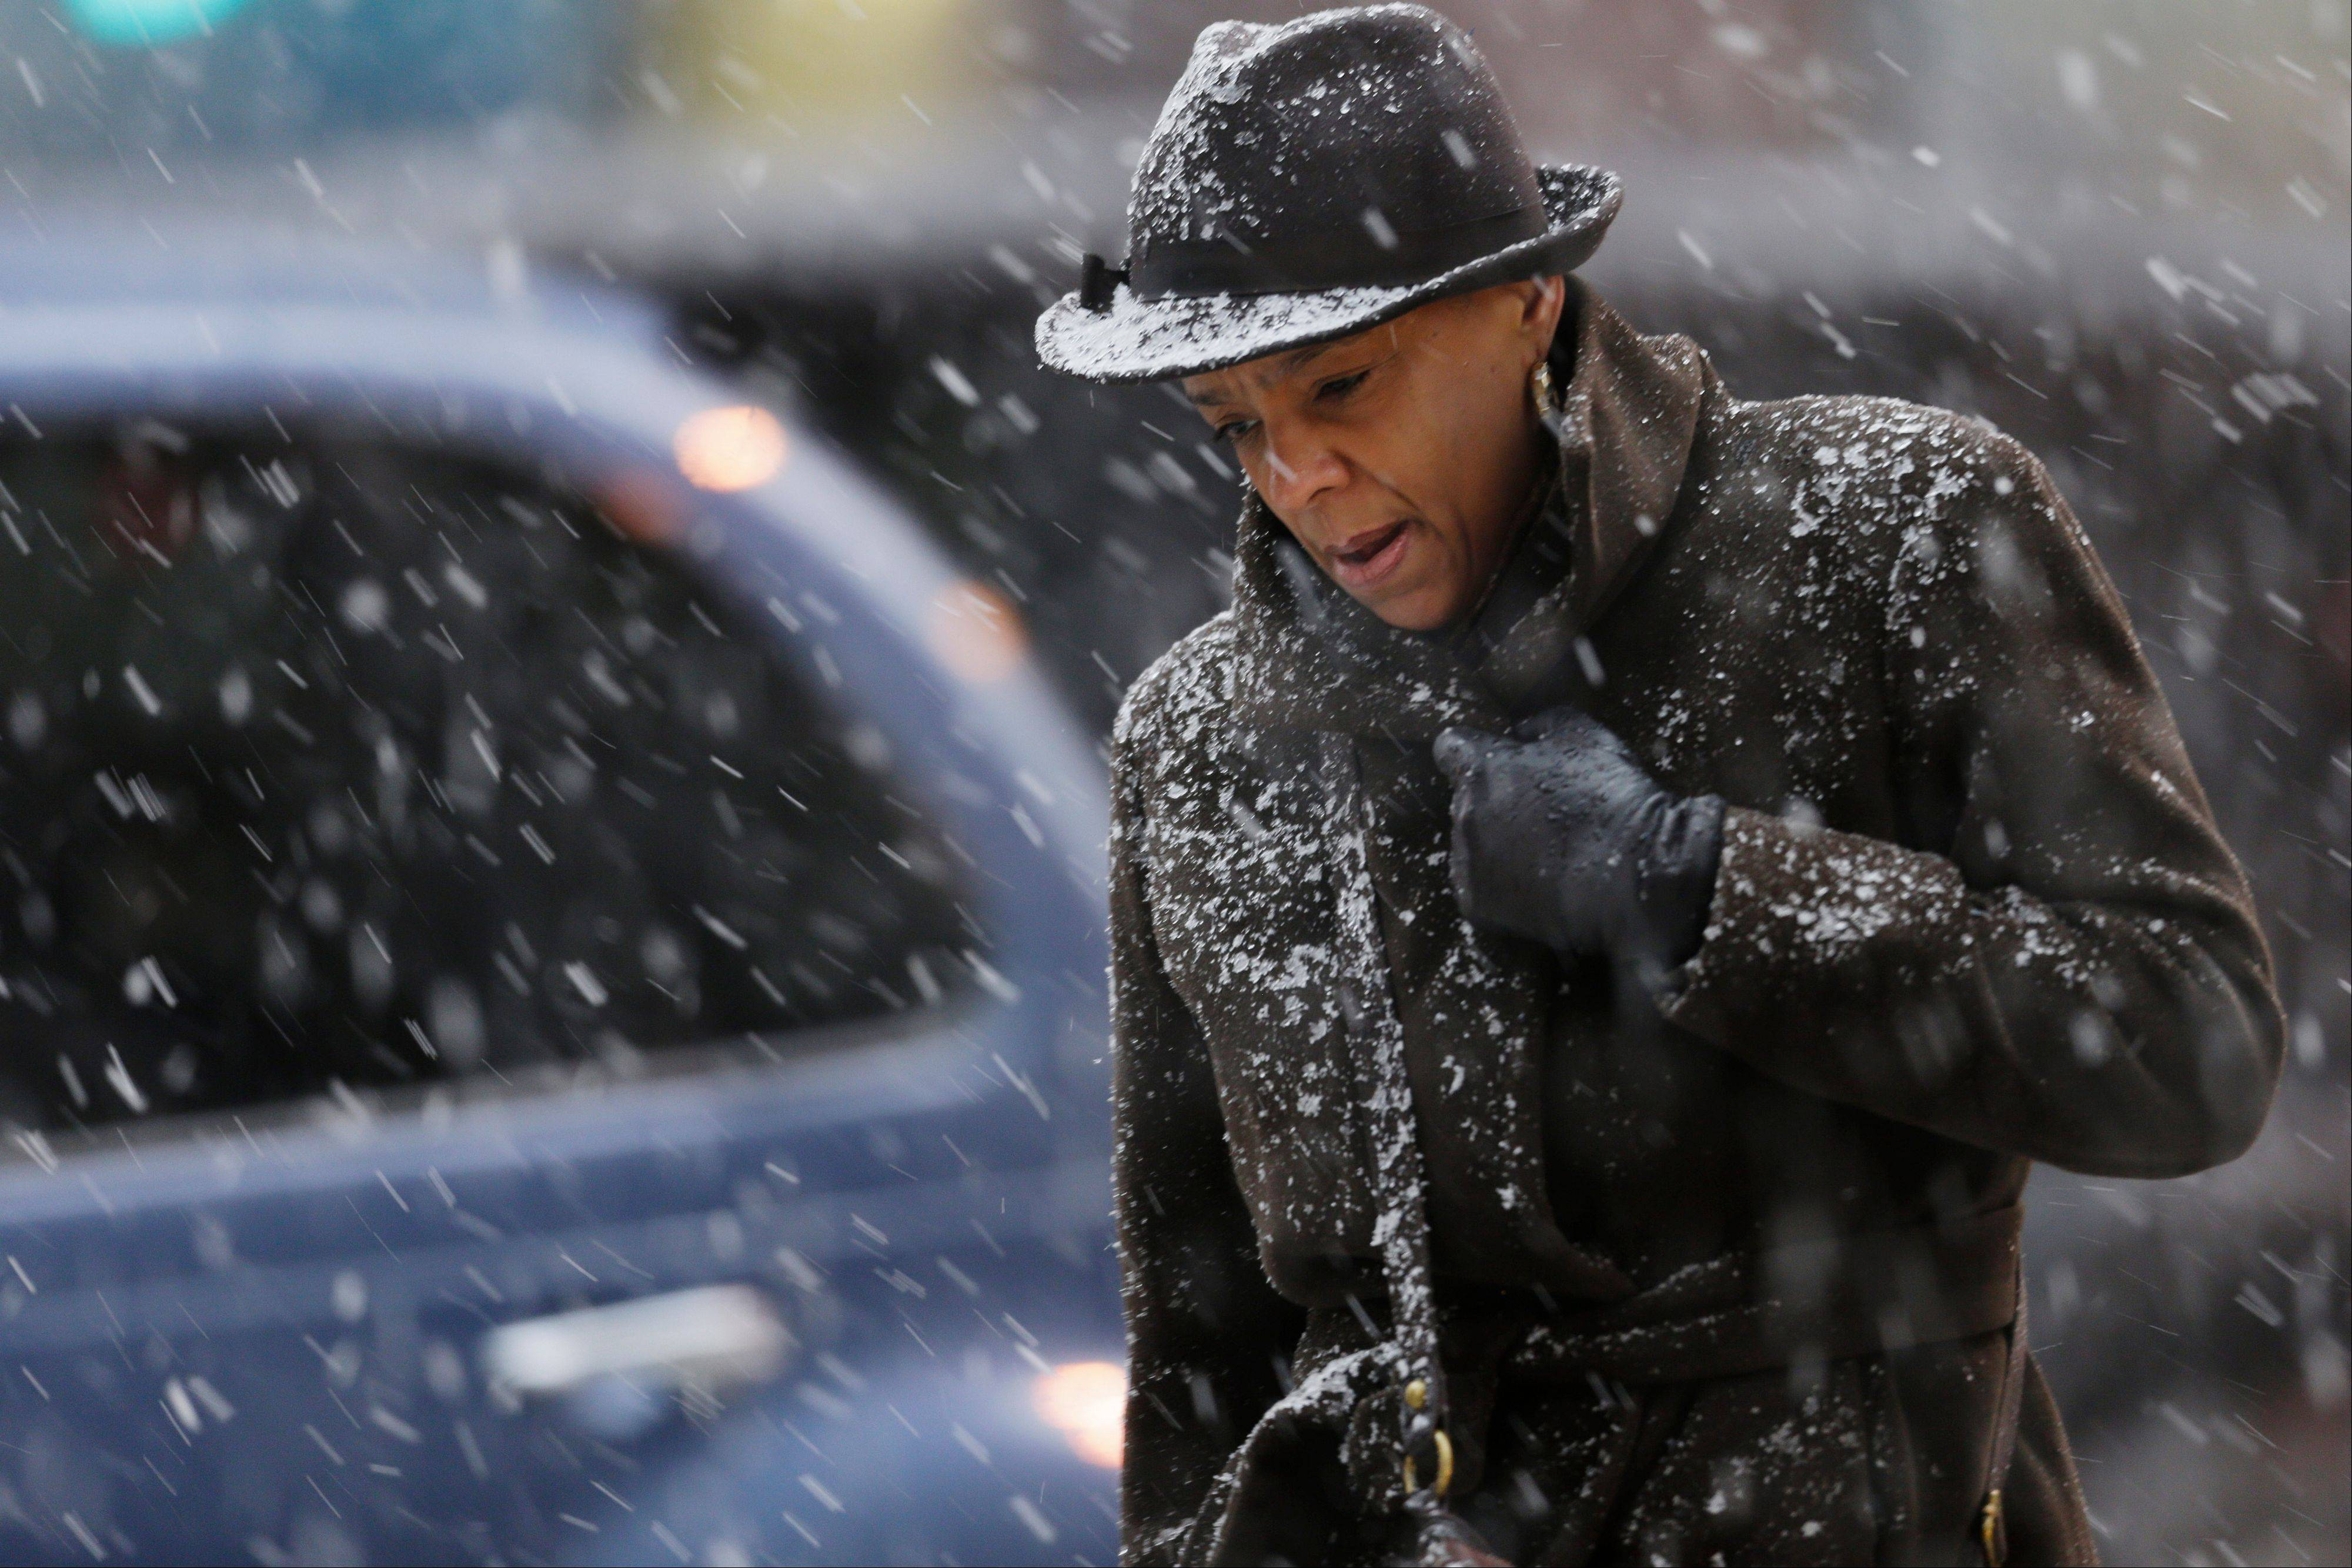 A commuter walks through a spring snowstorm Monday, March 25, 2013, in Philadelphia. The storm that blanketed the Midwest with heavy snow and slush continues its push east.